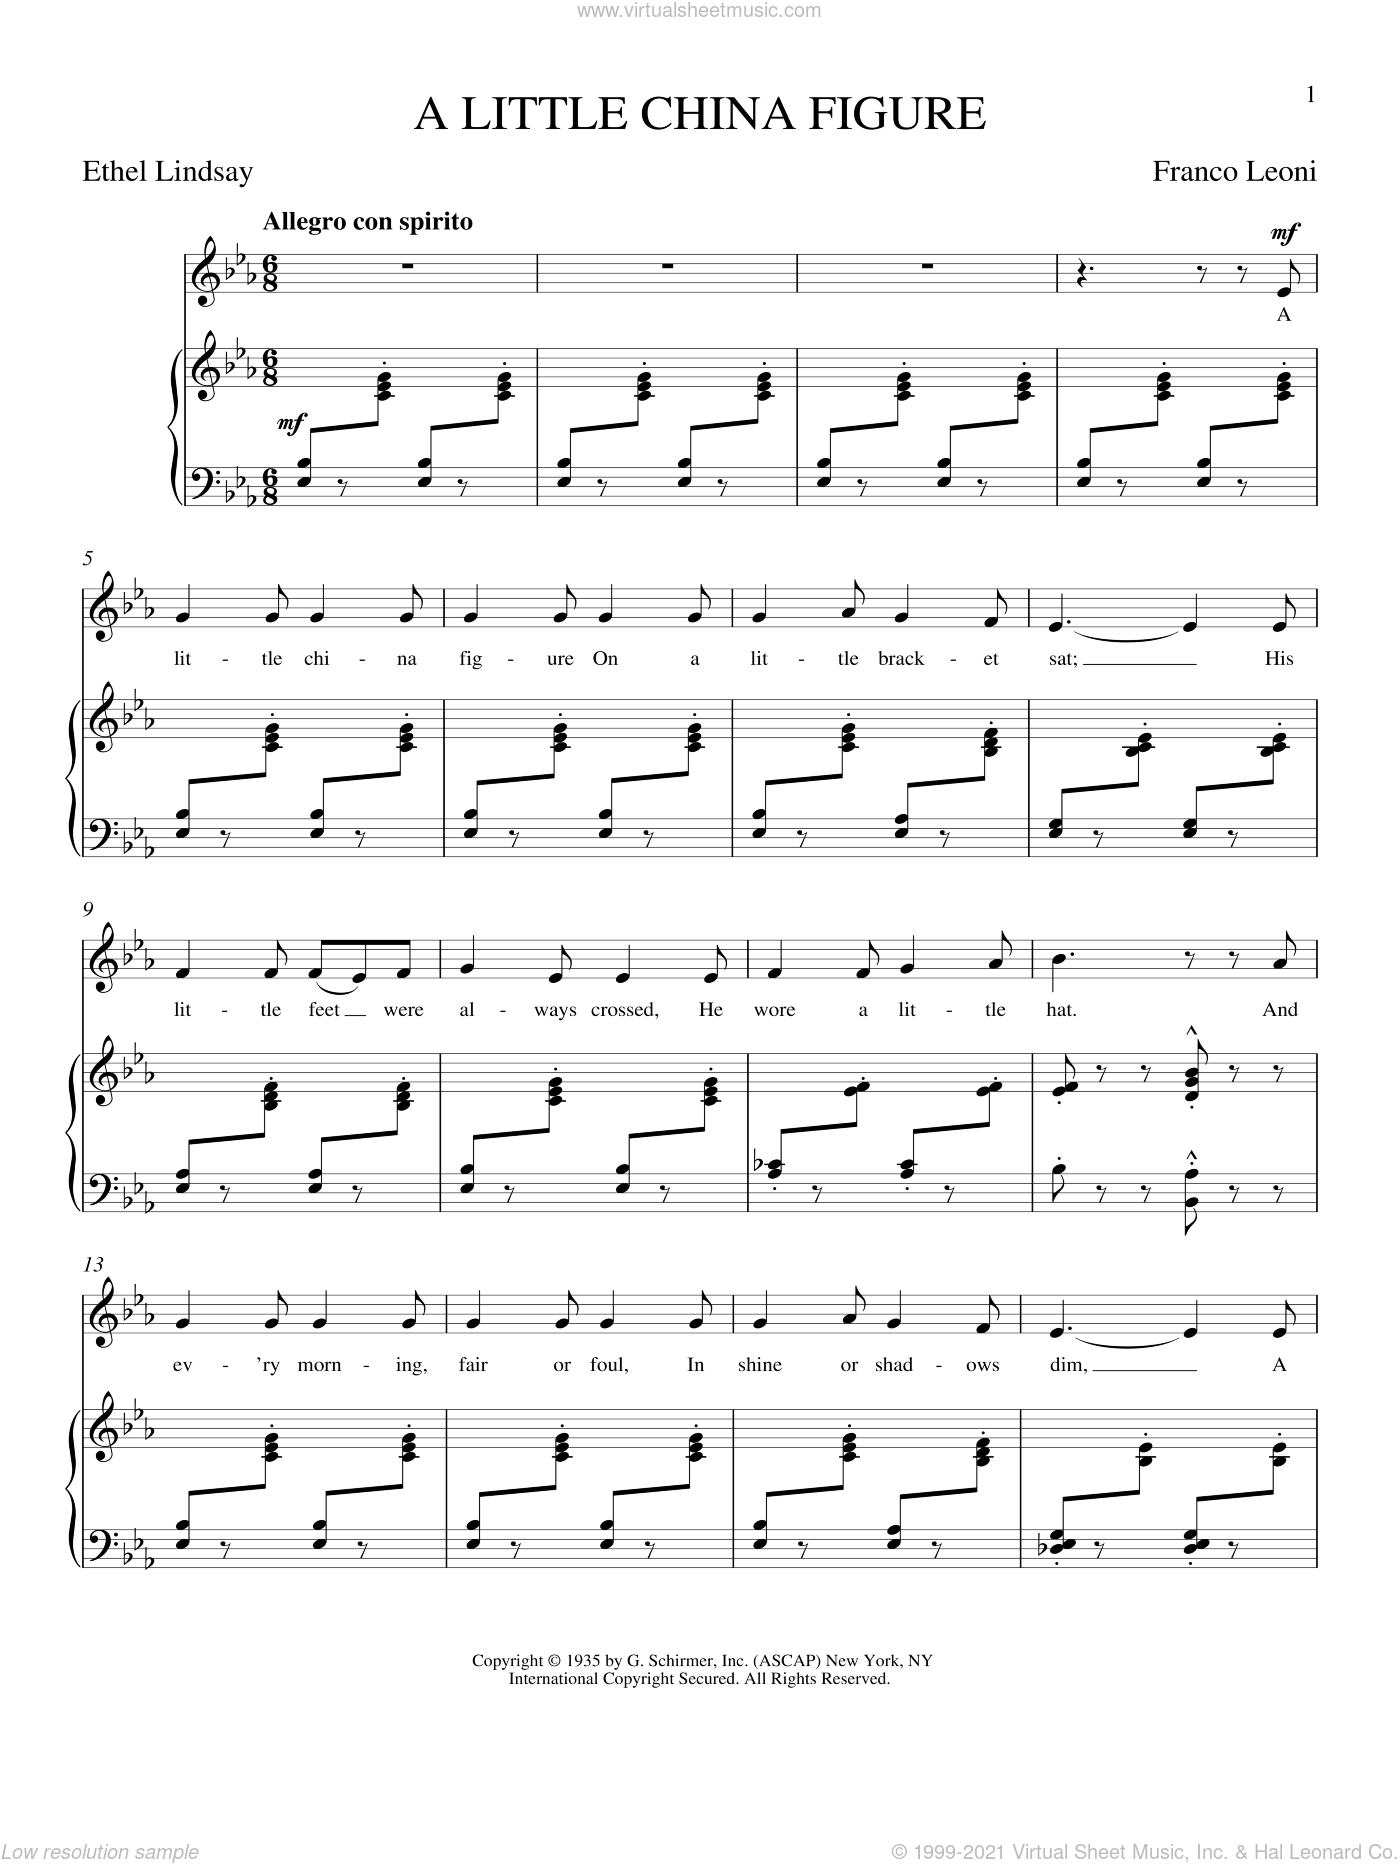 A Little China Figure sheet music for voice and piano by Franco Leoni, classical score, intermediate skill level